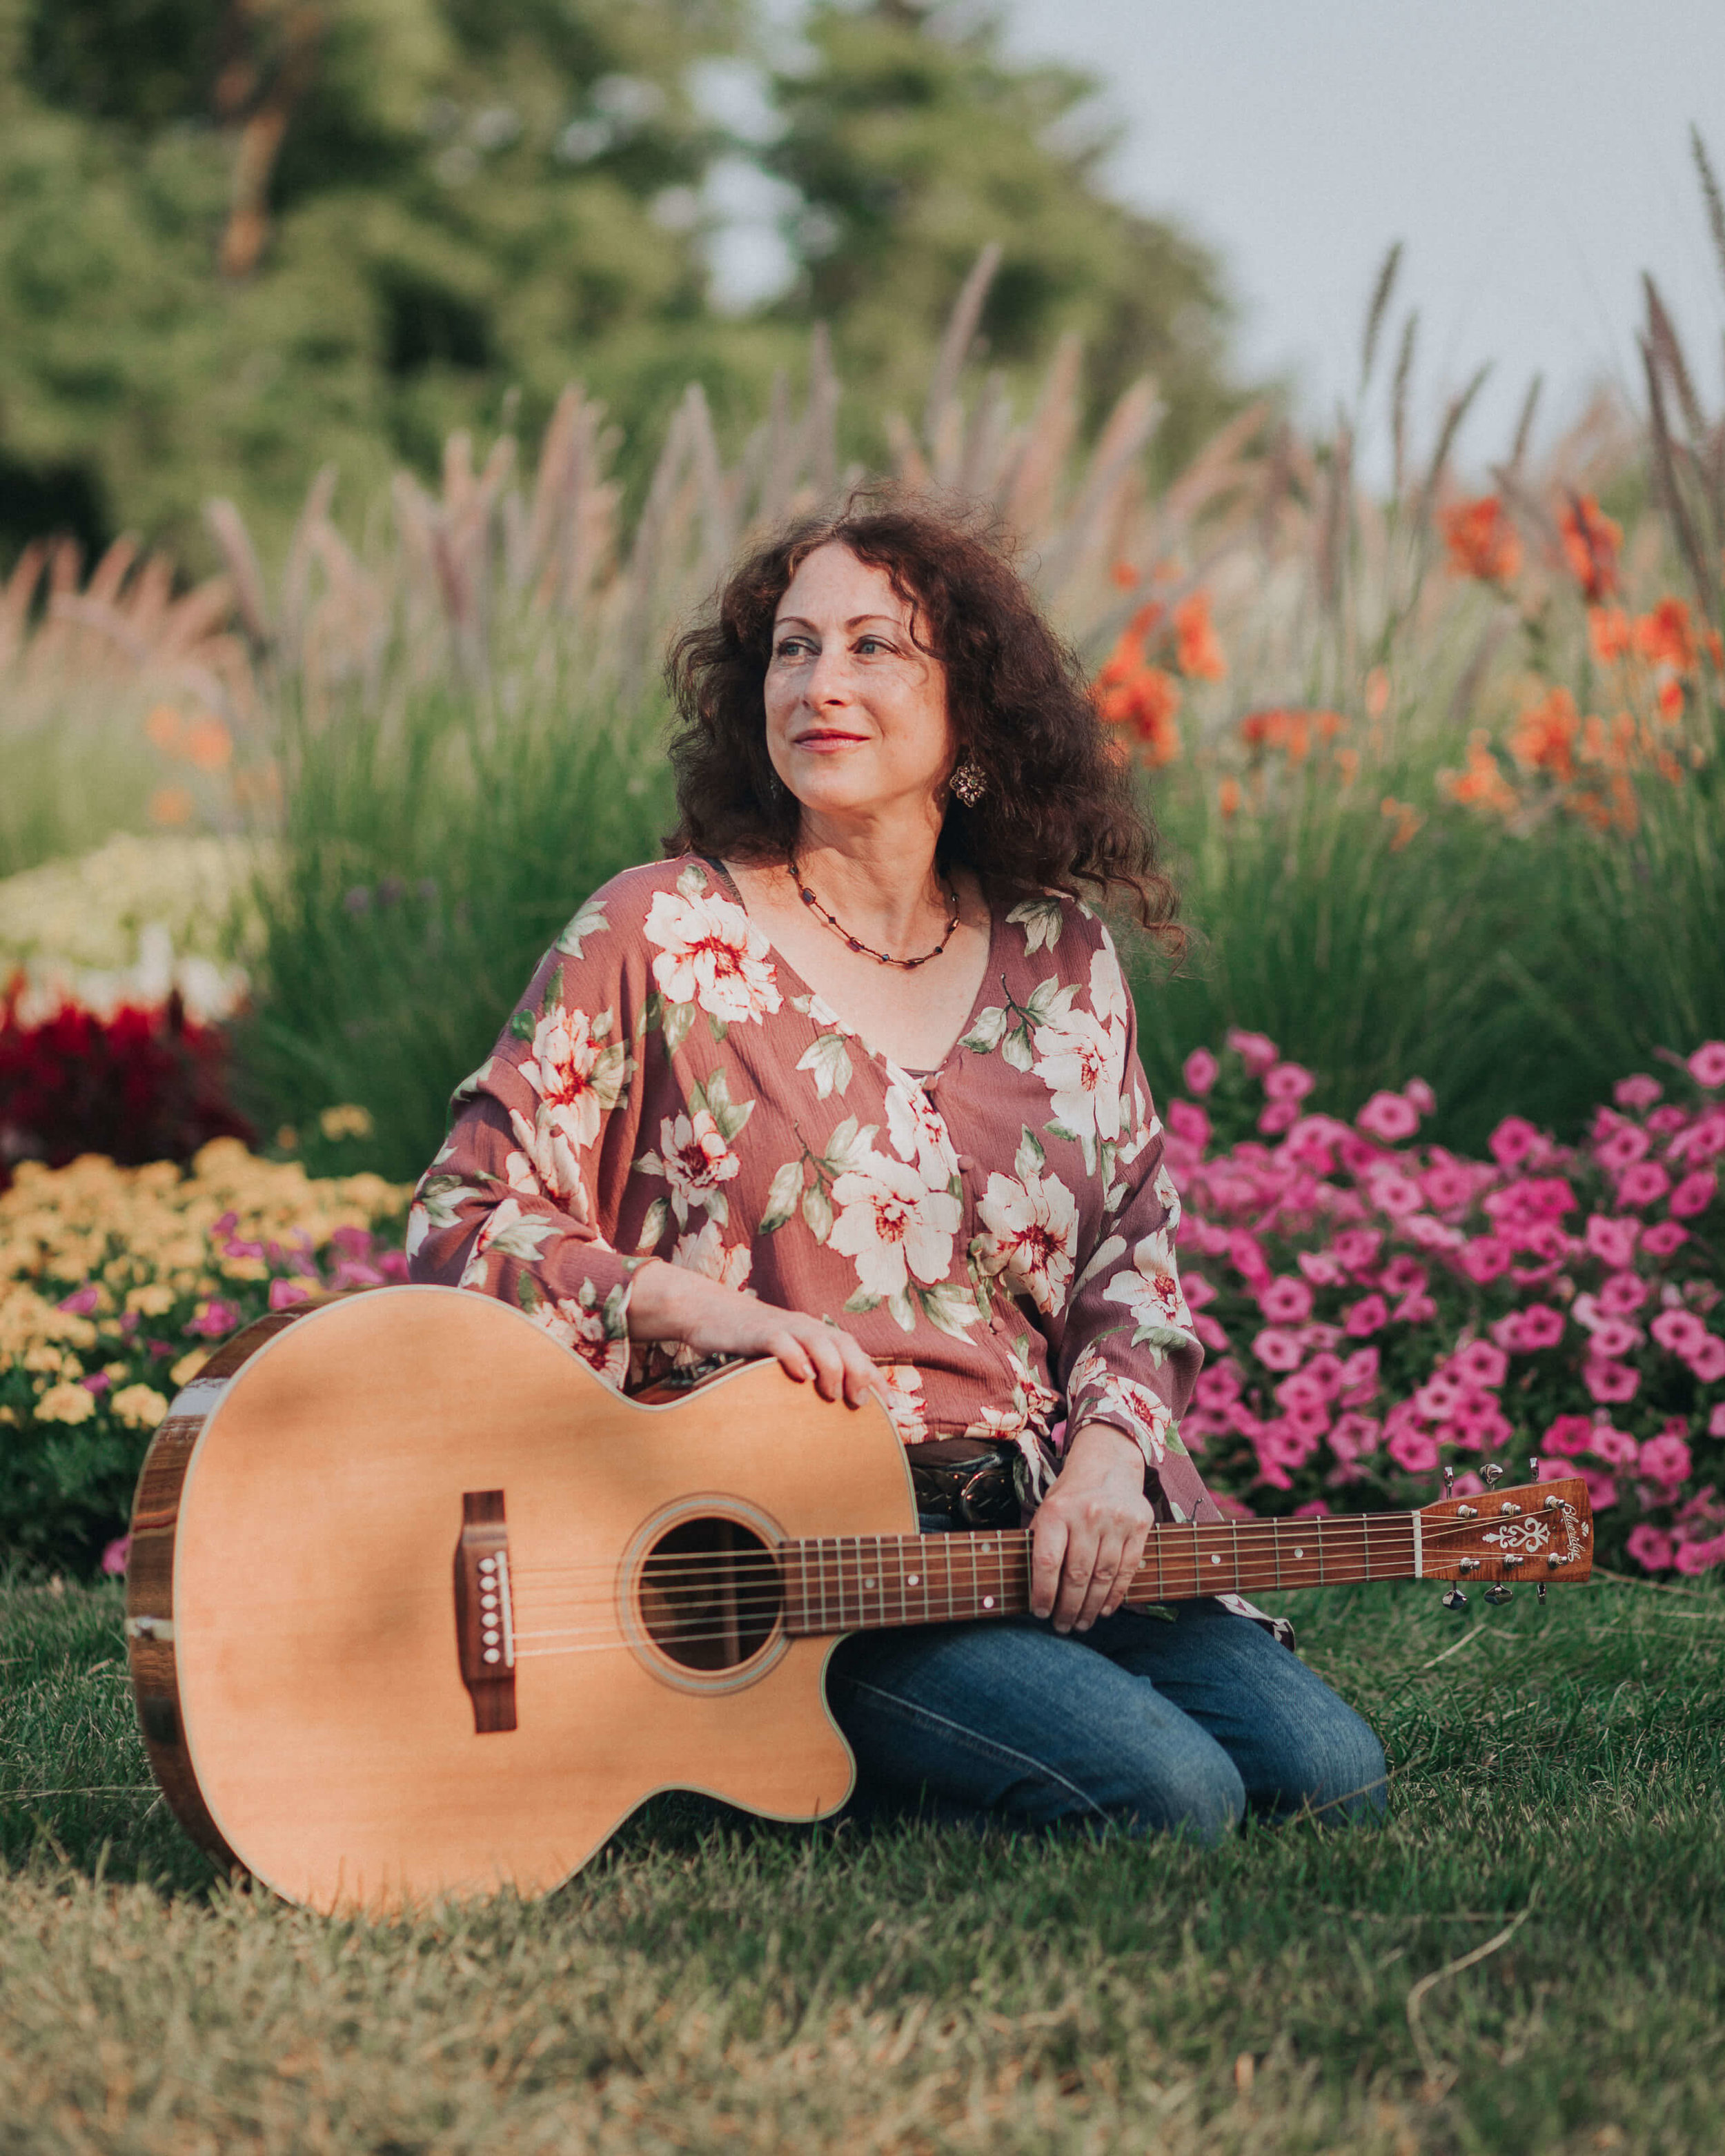 female musician near flowers with acoustic guitar